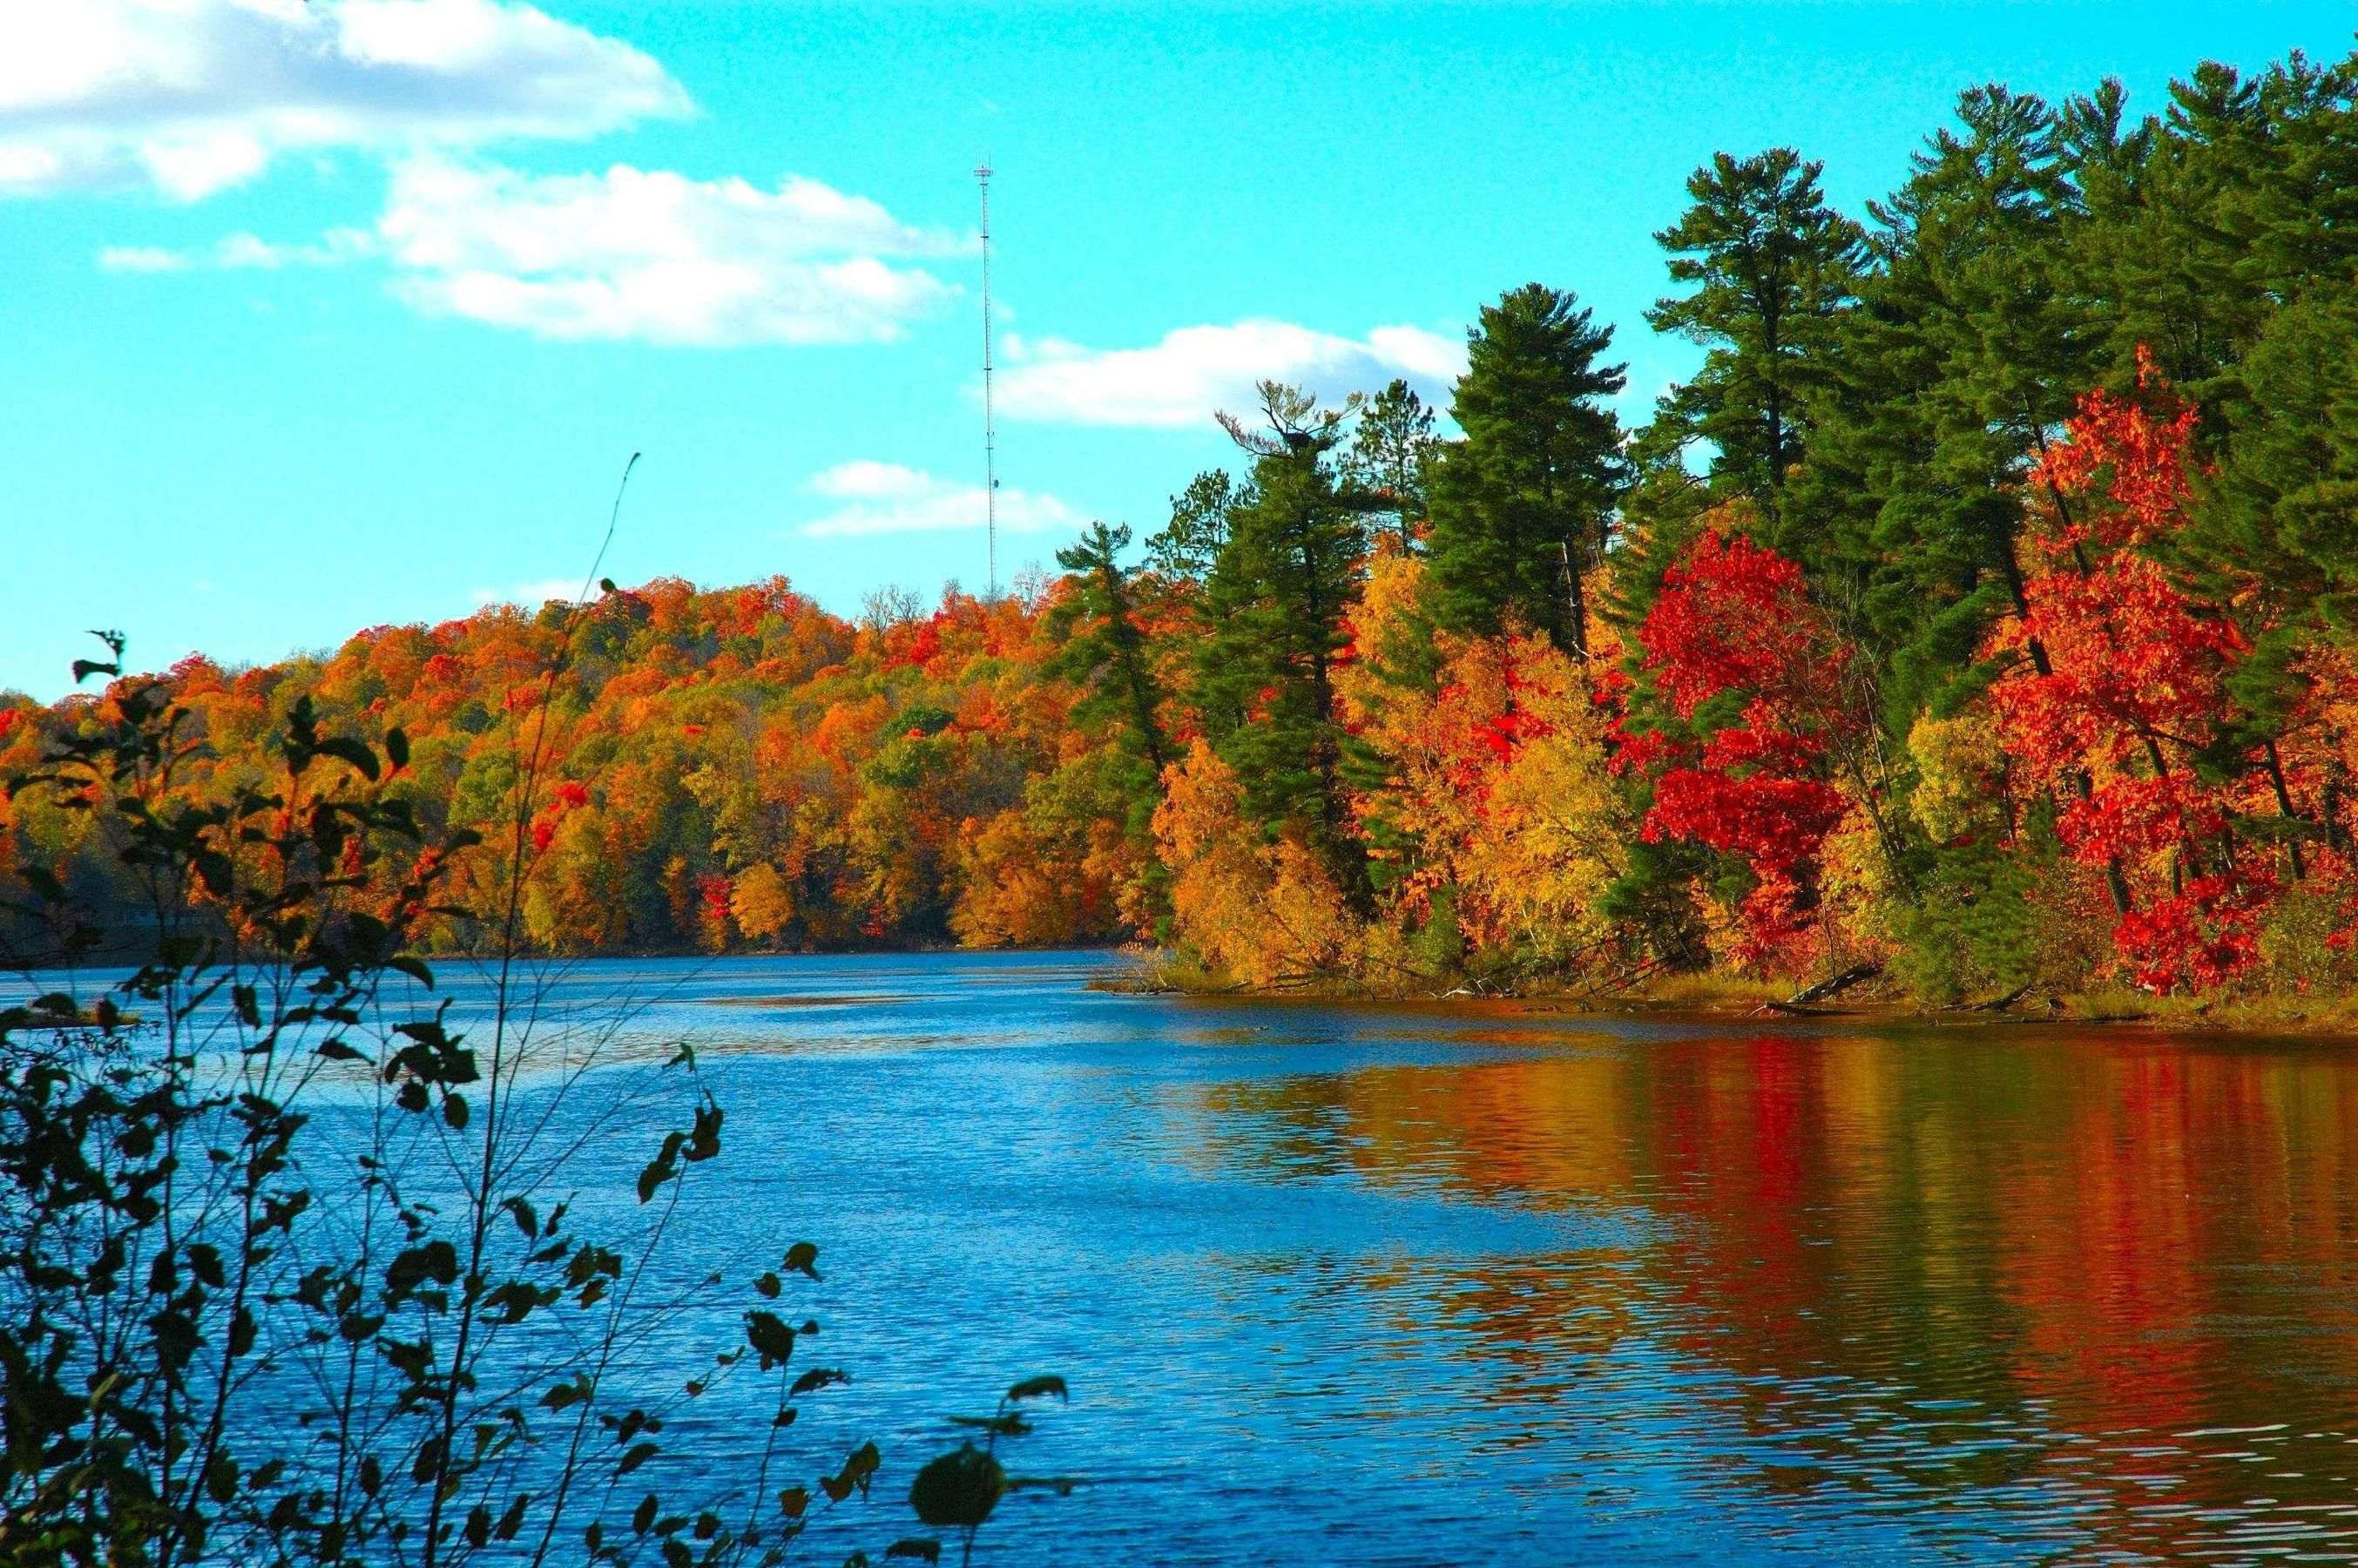 autumn landscapes a˜† wallpapers colorful fall landscapes computer desktop wallpaper backgrounds wallpapers of landscapes from across american countryside